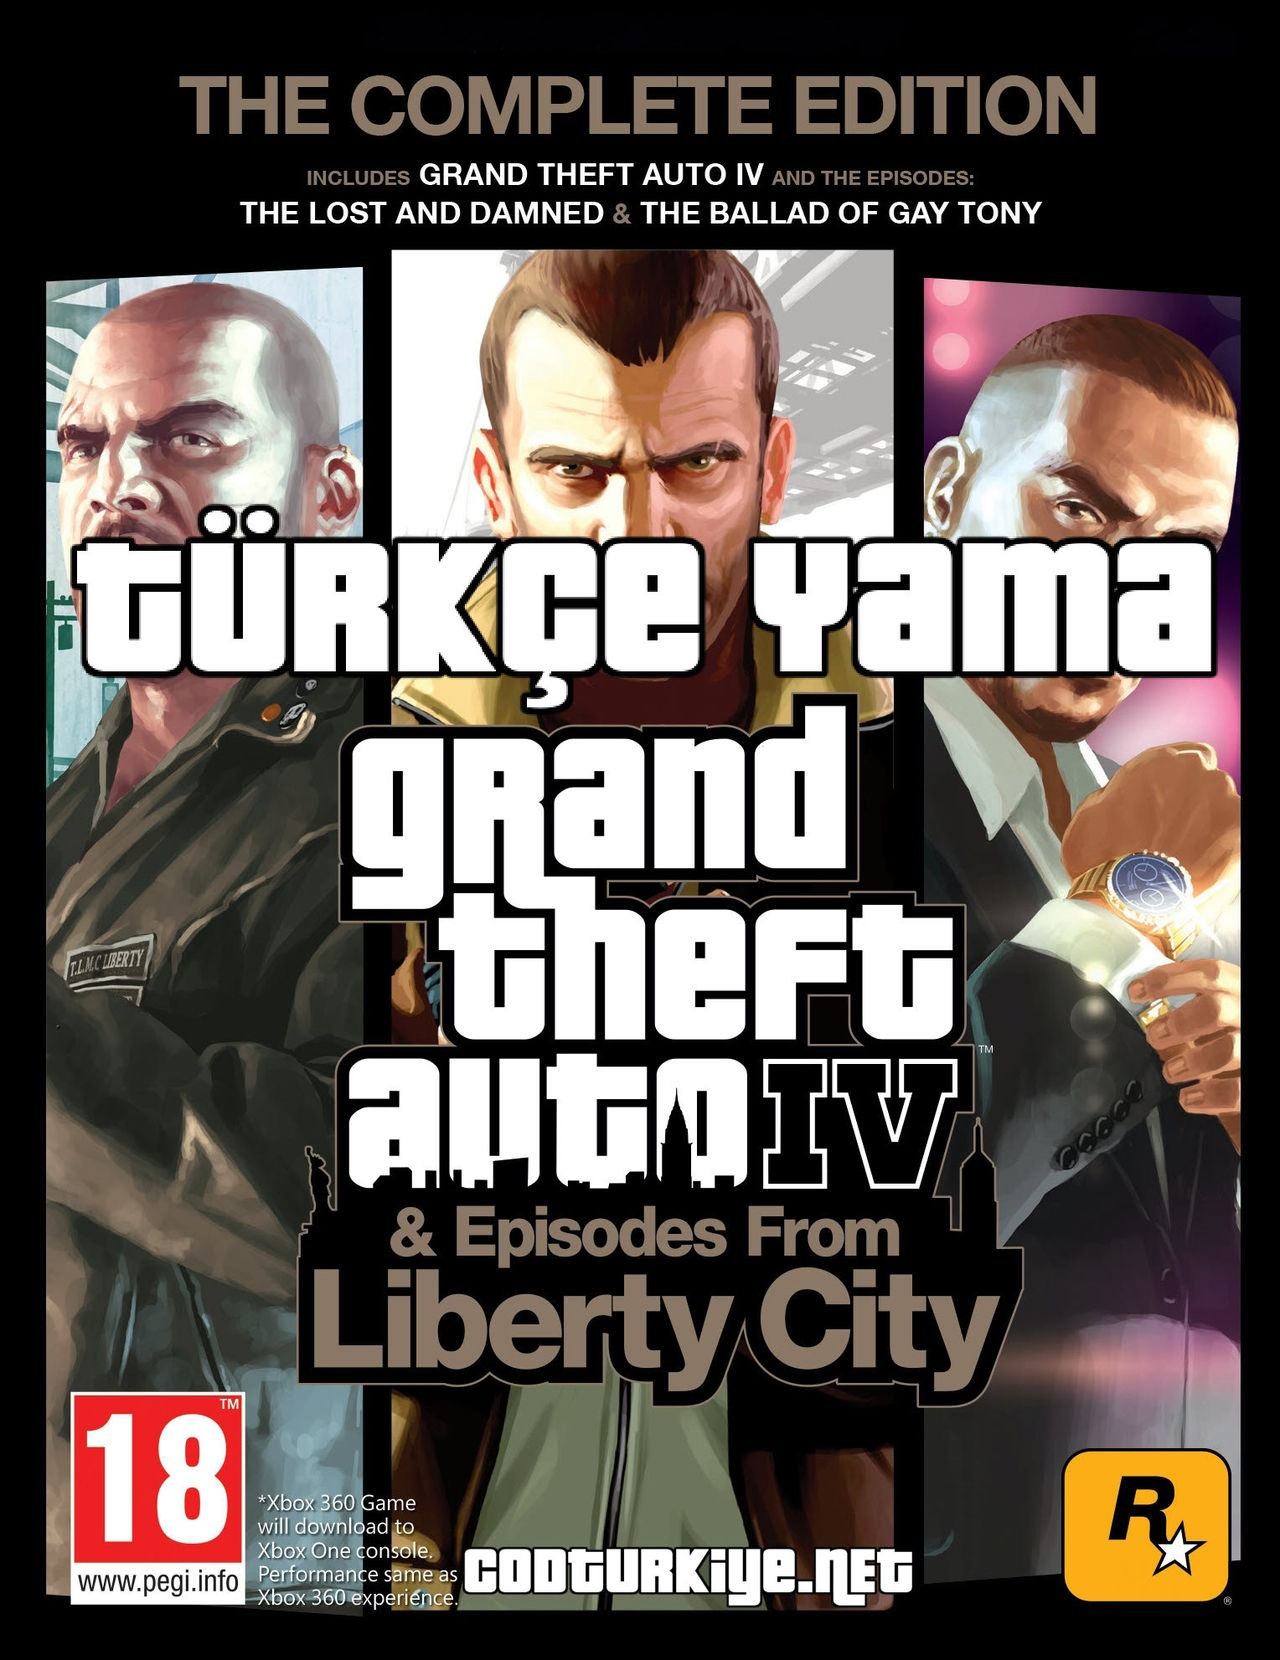 Grand Theft Auto IV: The Complete Edition Türkçe Yama